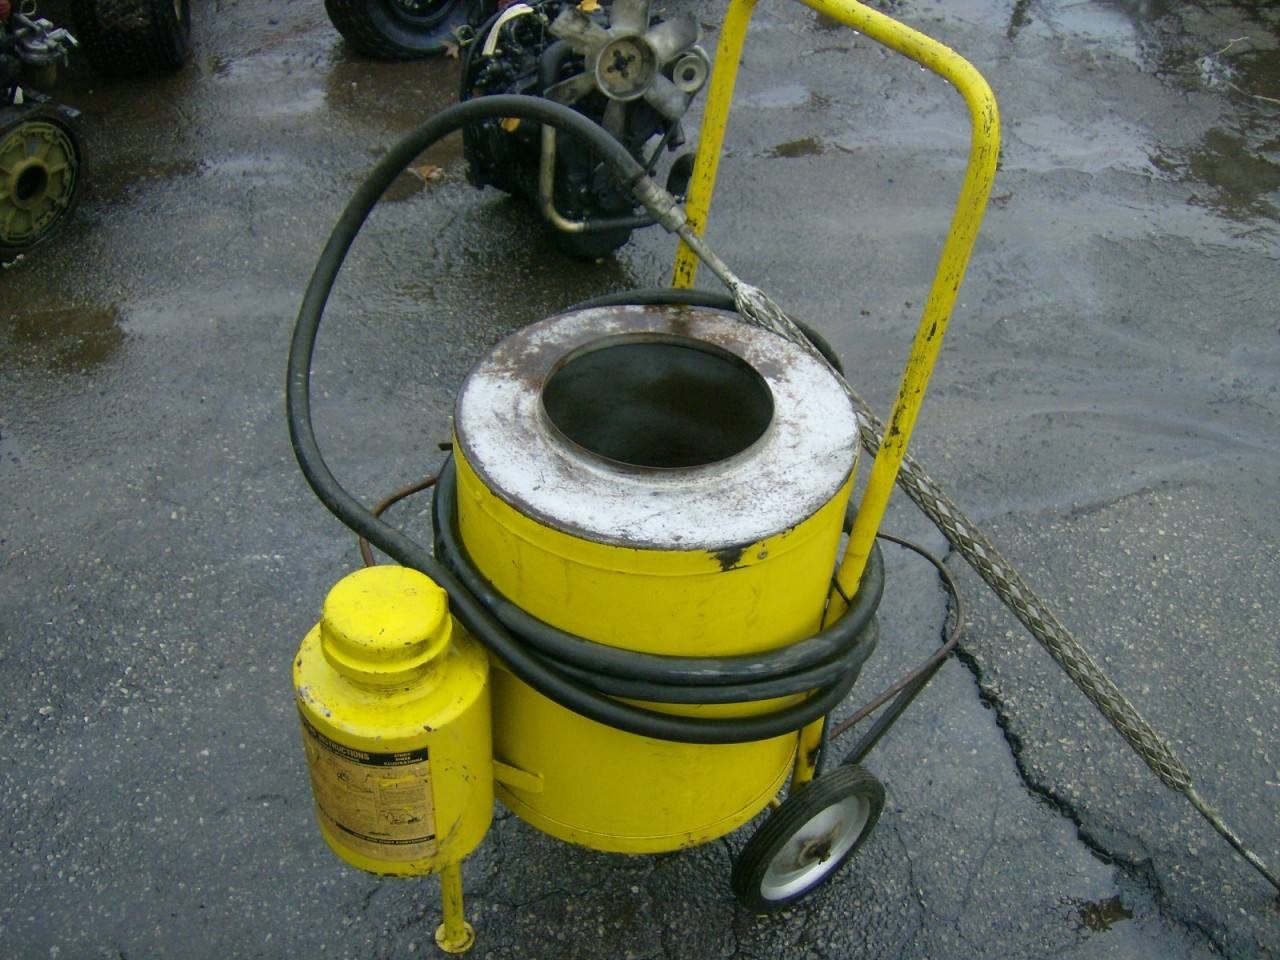 Steam cleaning units